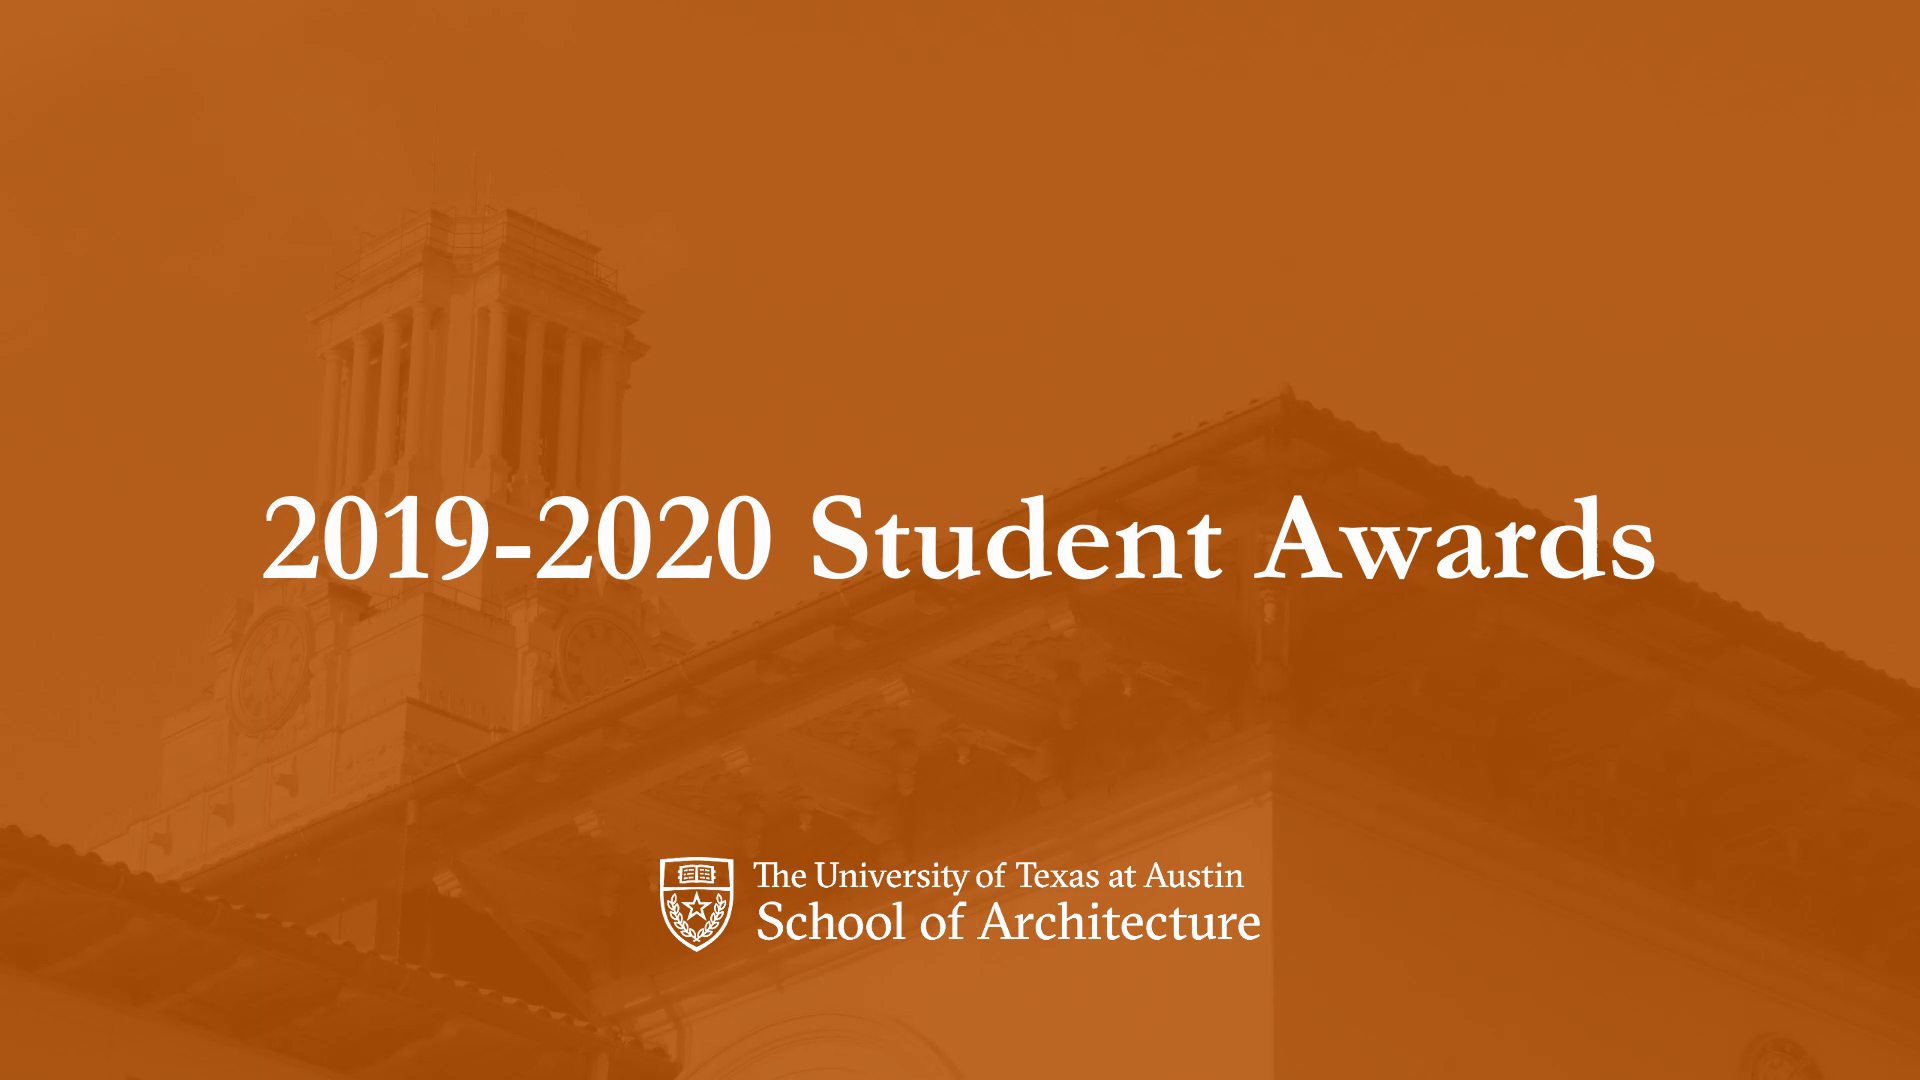 2019-2020 Student, Faculty and Staff Awards